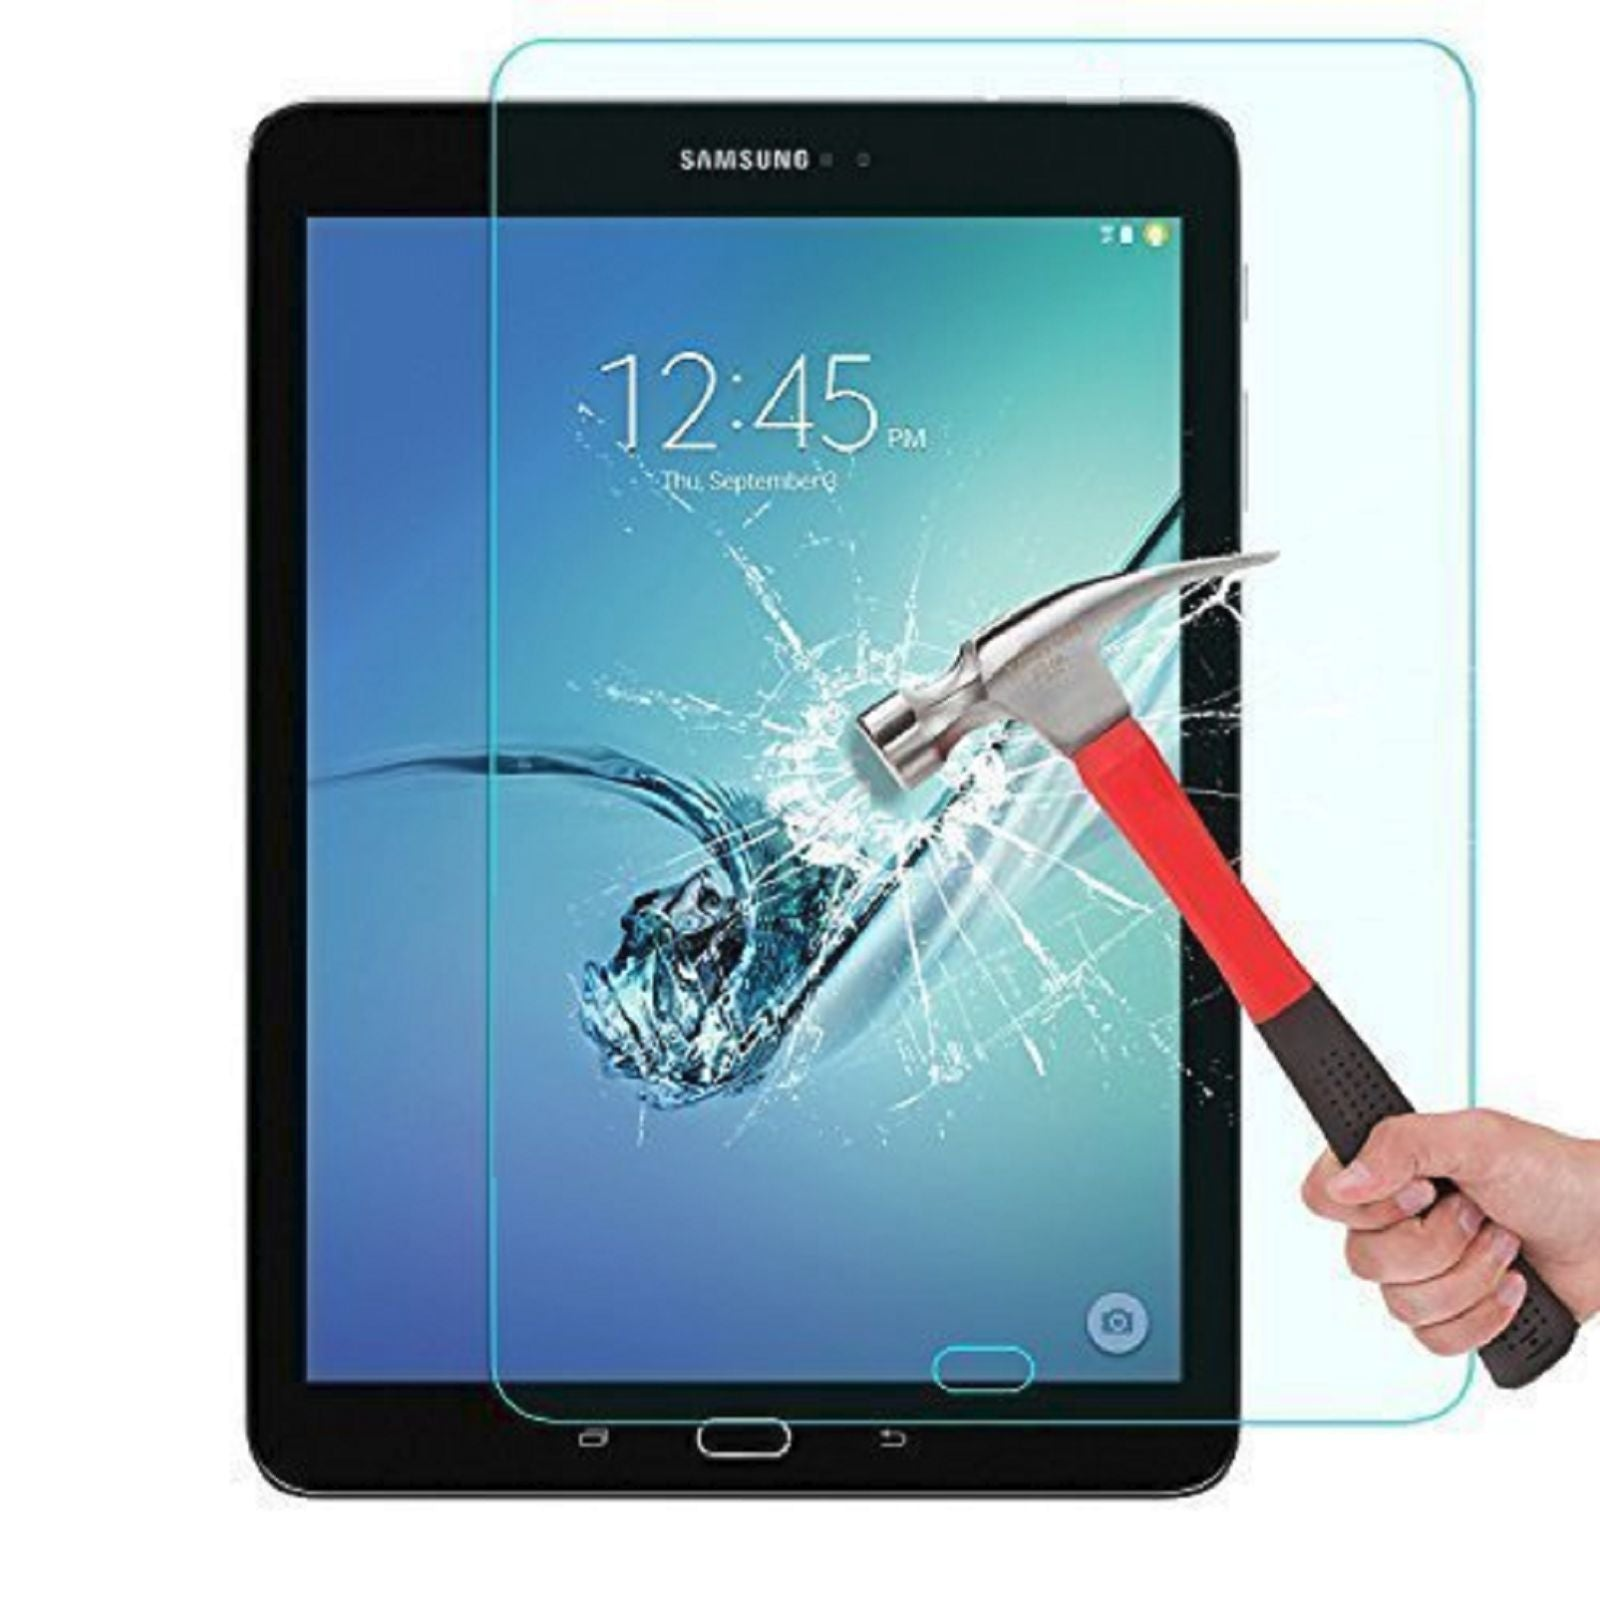 Samsung Galaxy Tab S2 9.7 / T810 / T815 Tempered Glass Screen Protector by Modes